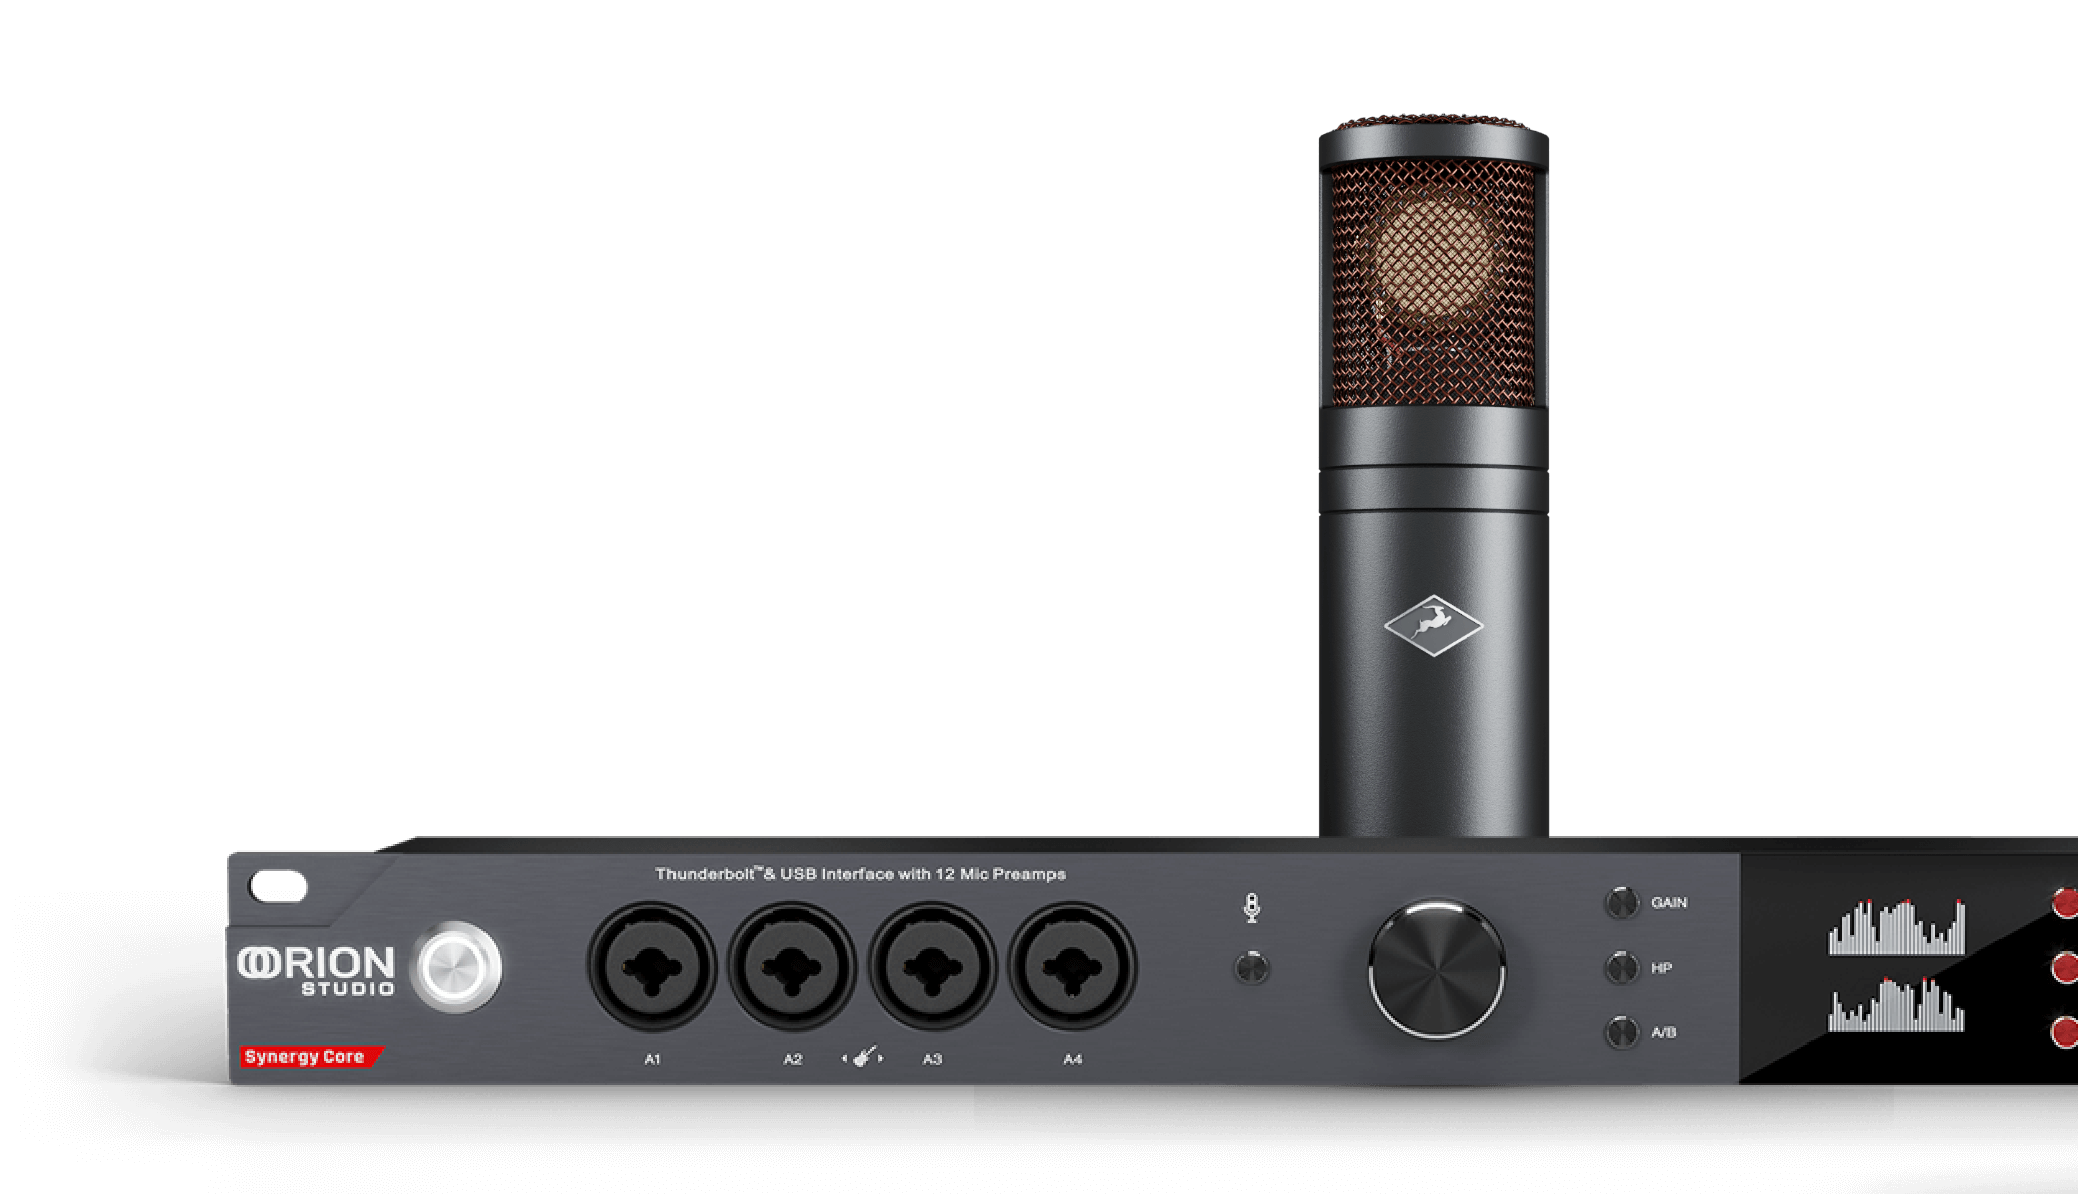 orion studio synergy core and edge duo